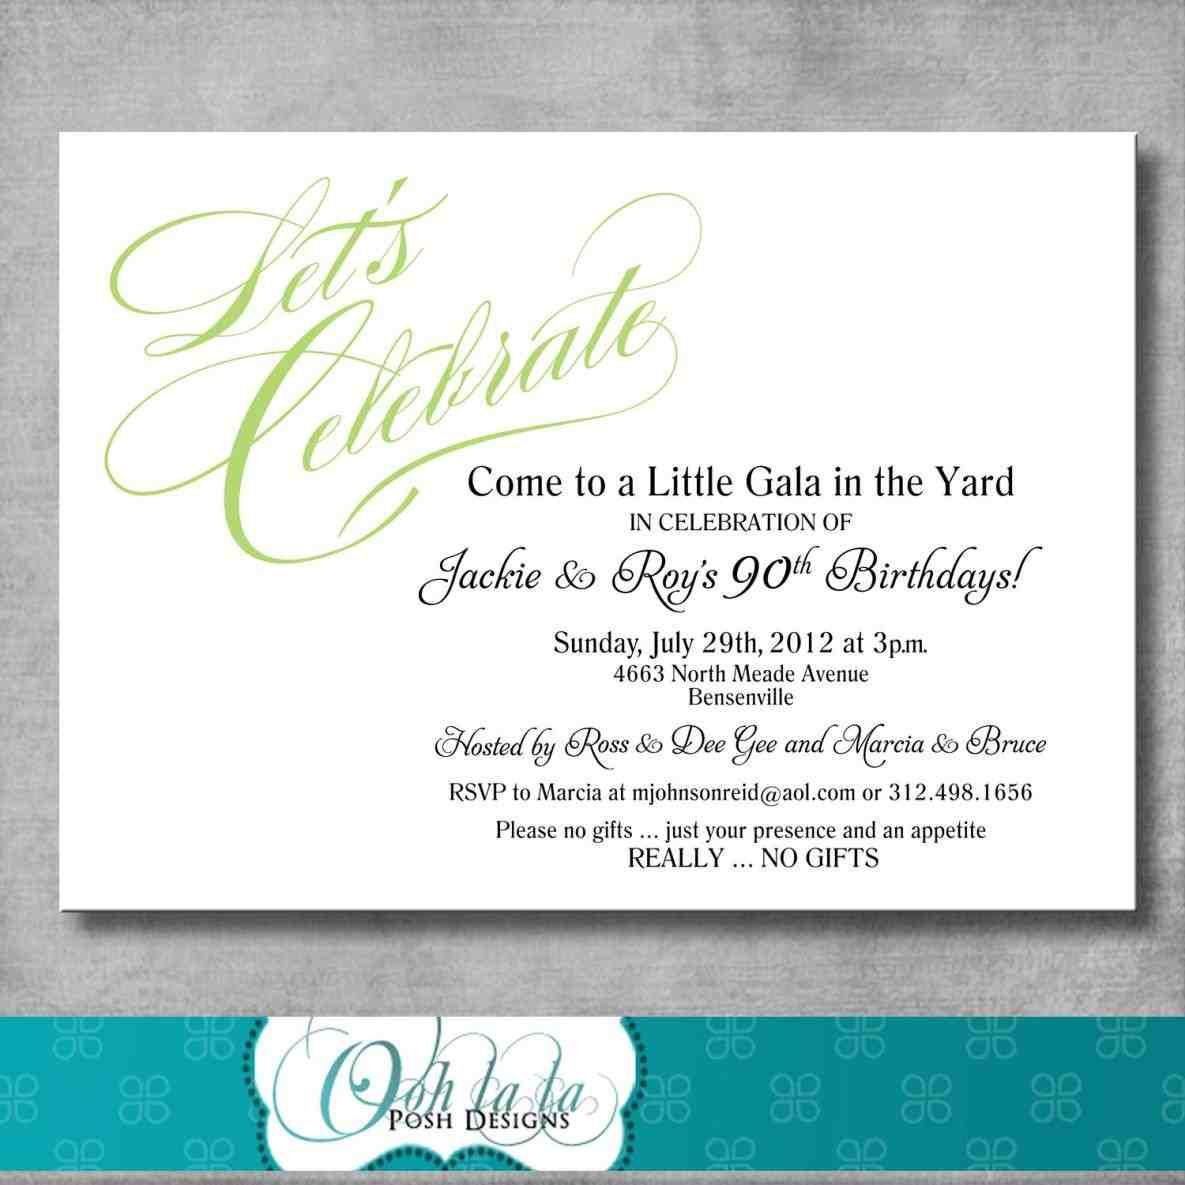 Full Size Of Template:30th Birthday Invitations Templates Free With 50th  Birthday Surprise Party Invitations . 60th Birthday Invites. 18th Birthday  ...  Free 18th Birthday Invitation Templates